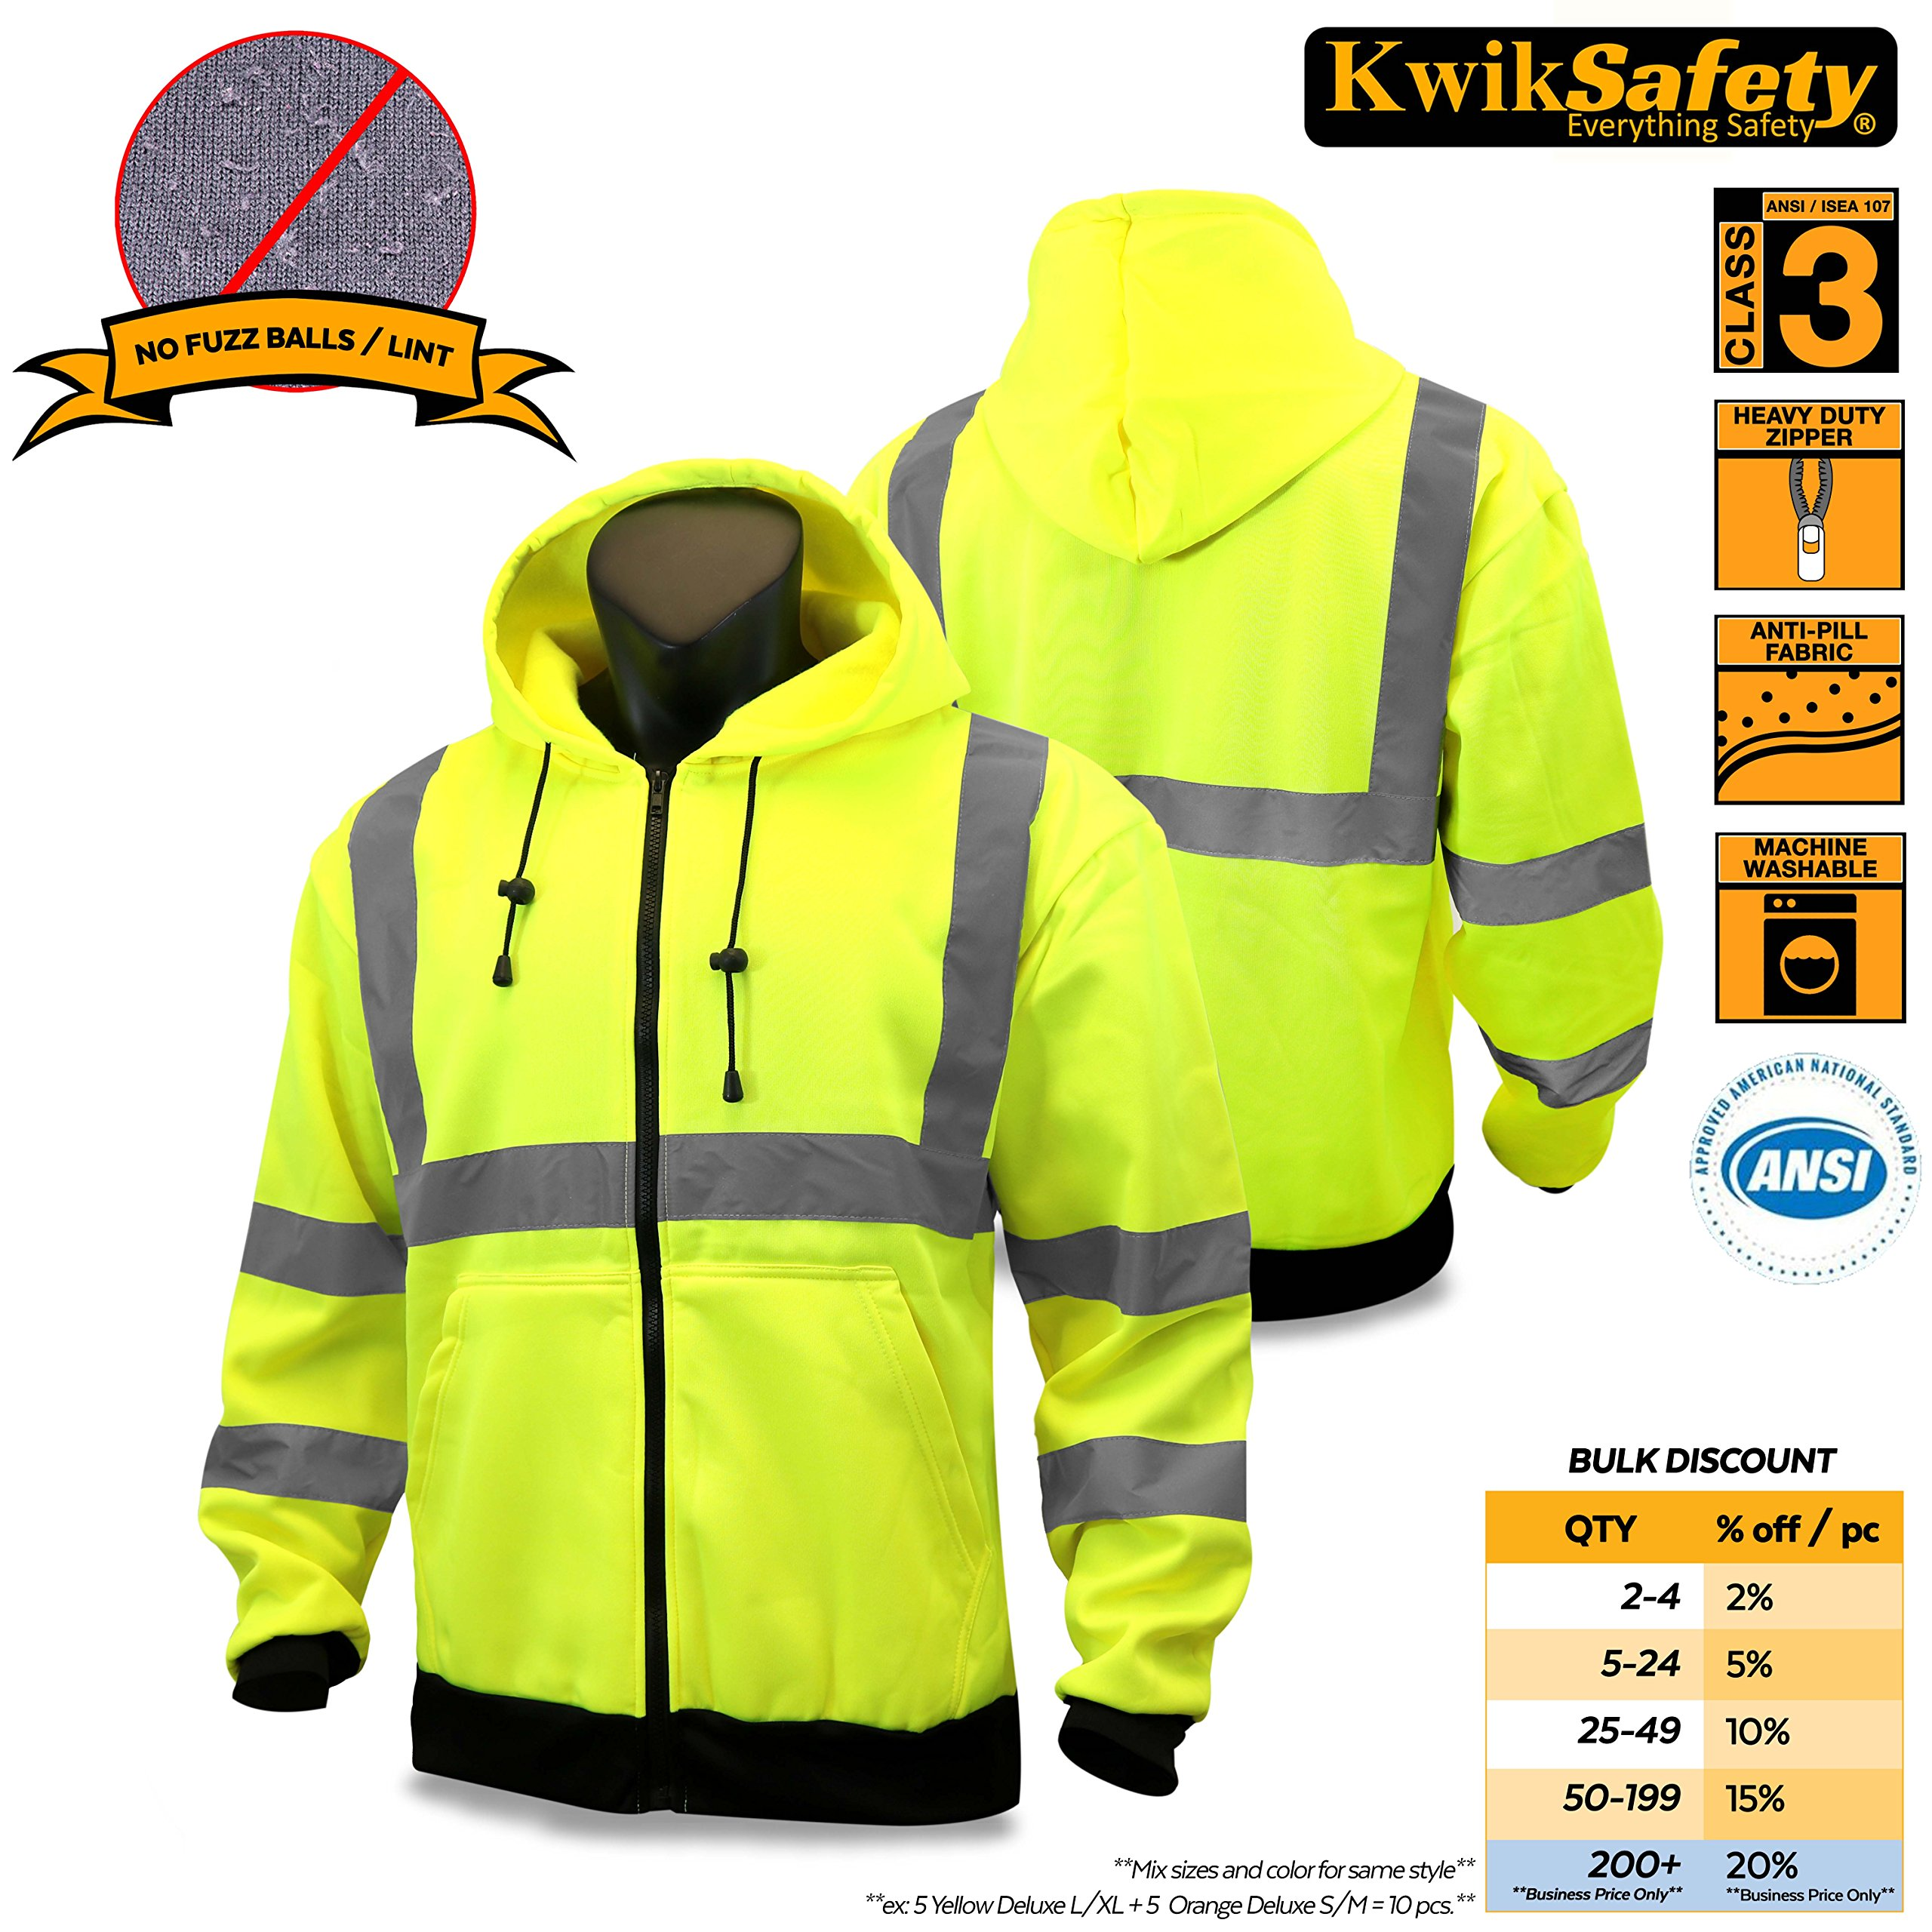 ccc411c86c4 Get Quotations · KwikSafety Class 3 High Visibility Safety Jacket ANSI  Reflective Soft Shell Jacket with Detachable Hood and